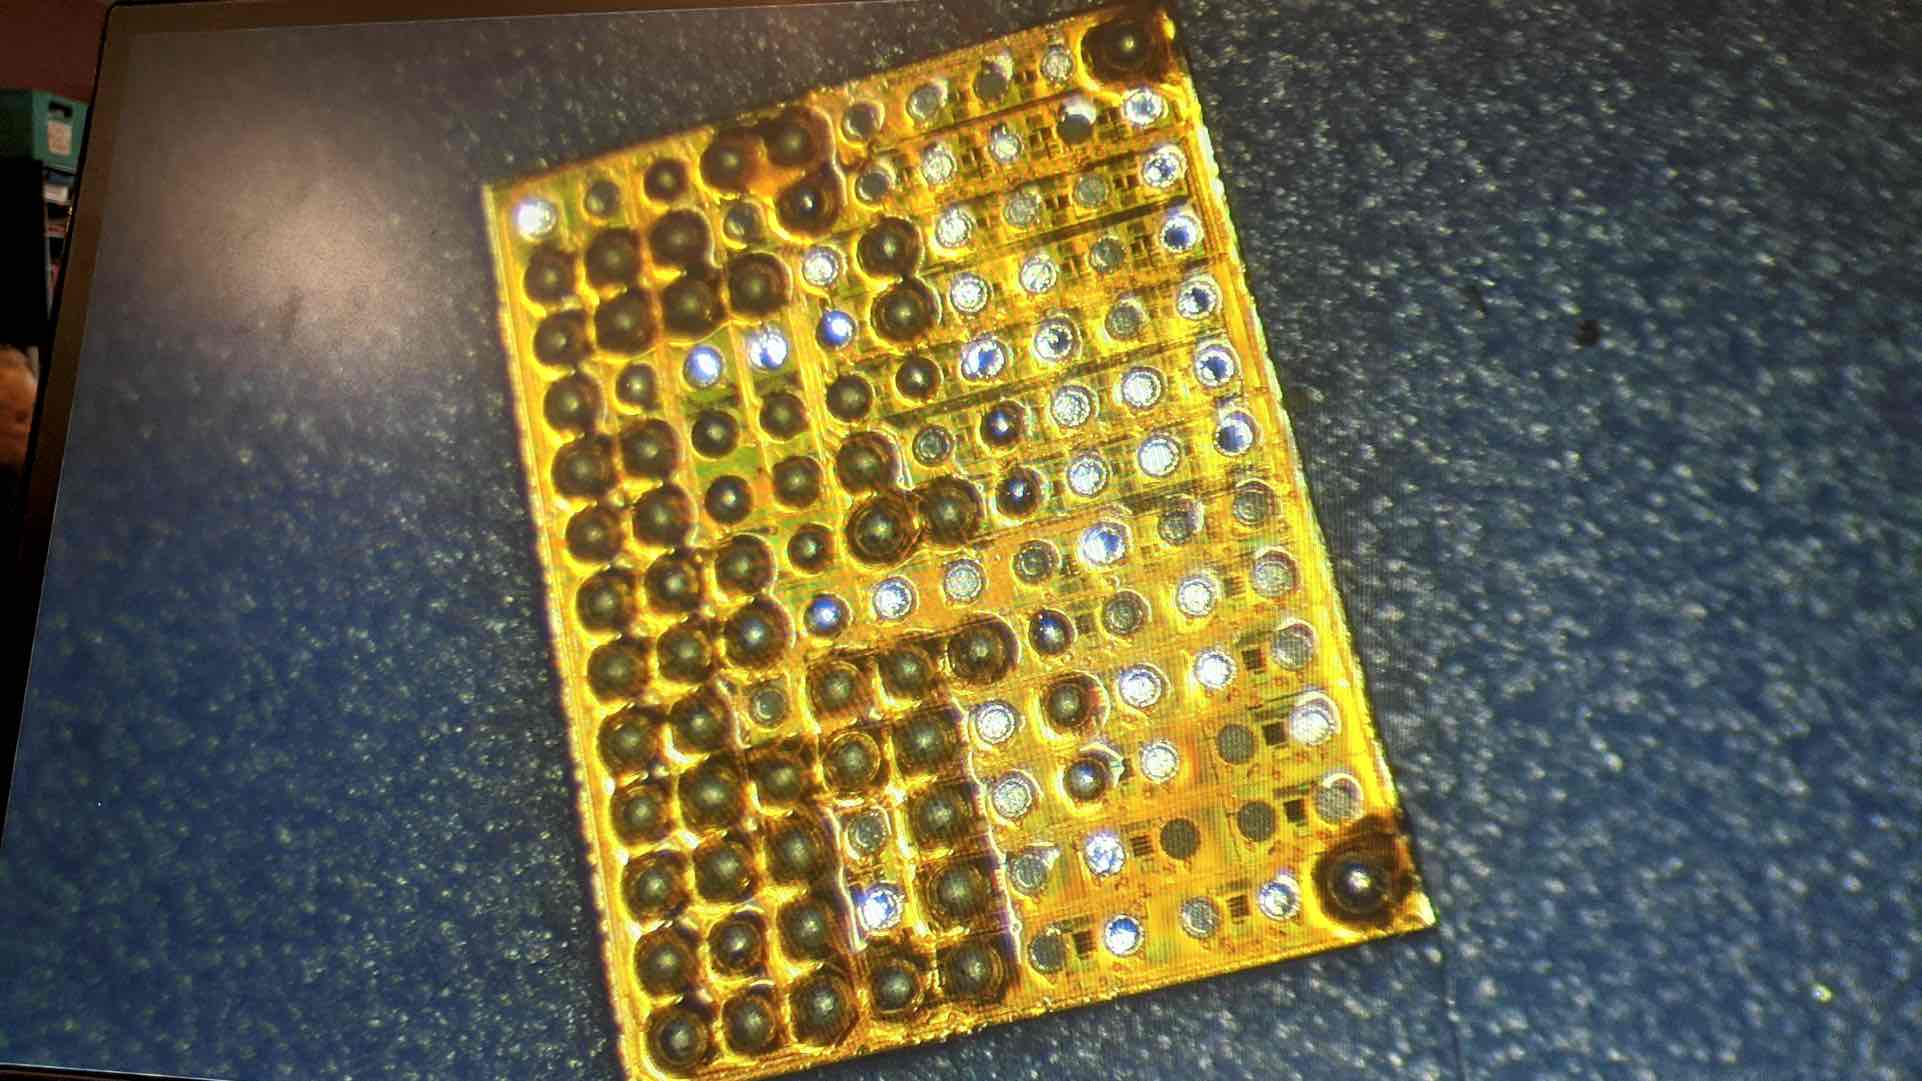 Backside of a chip removed from an iPhone board.